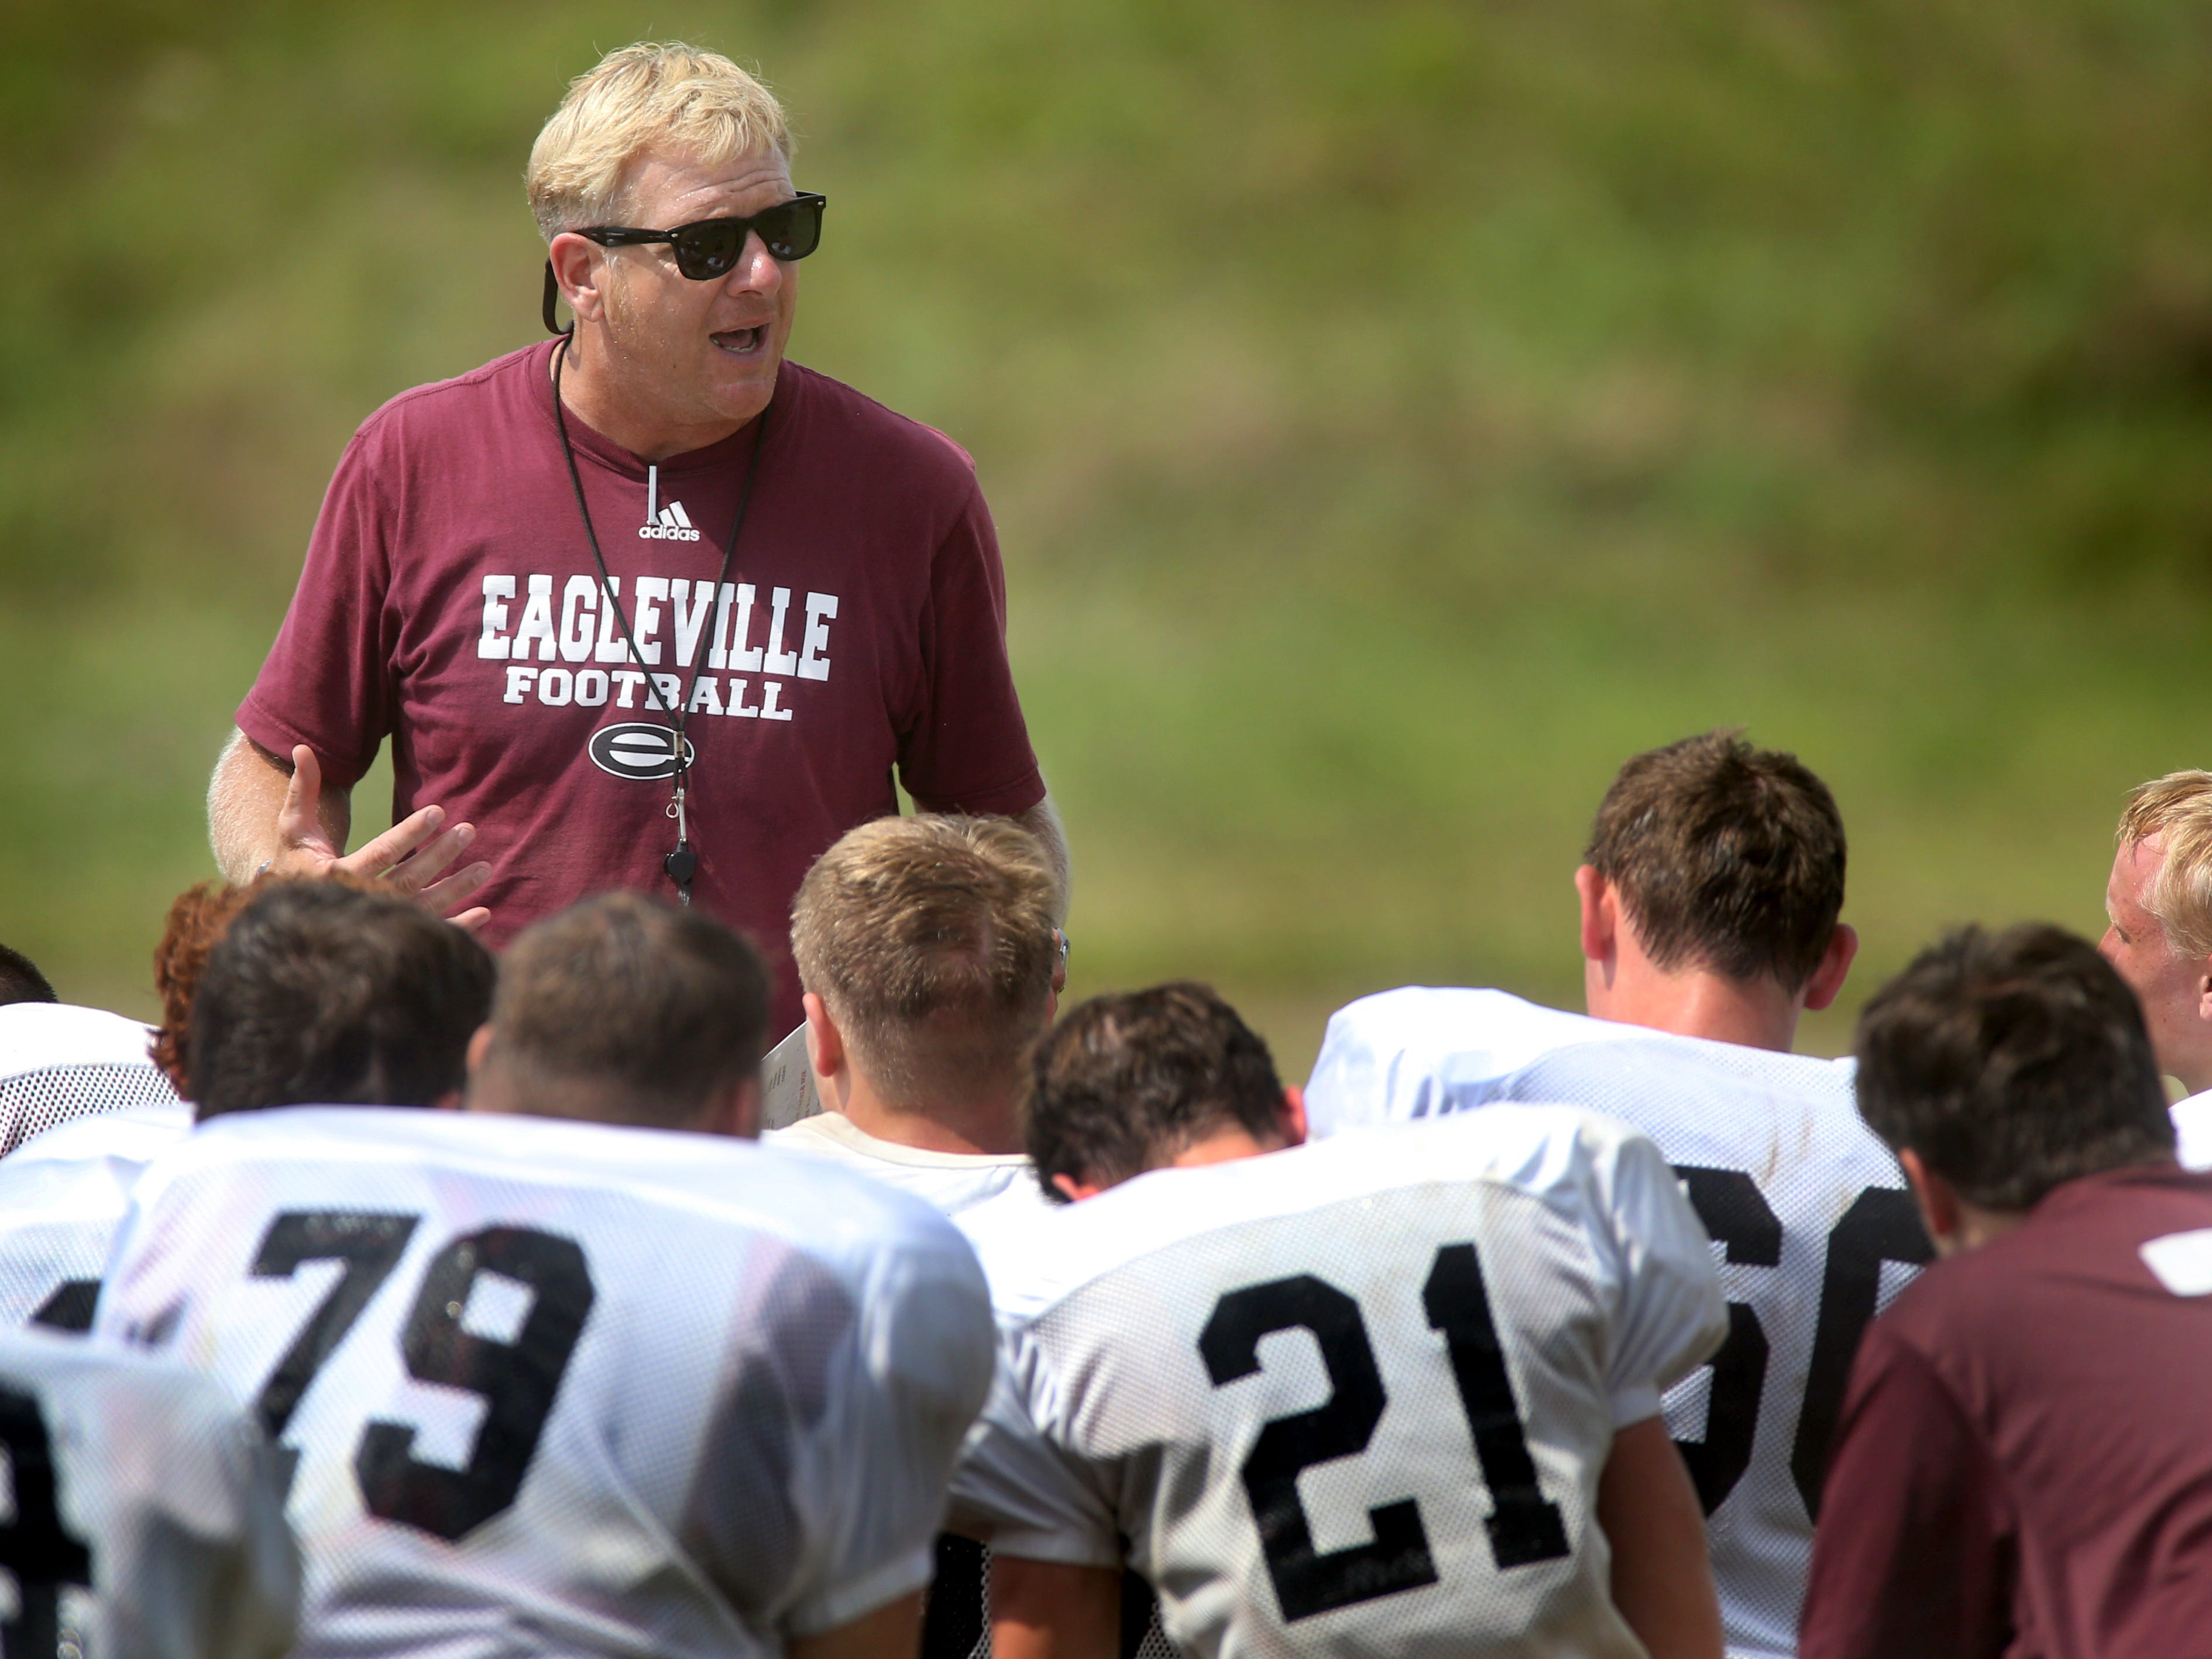 Eagleville head coach Steve Carson talks with the football team after practice at the school, on July 22, 2014.